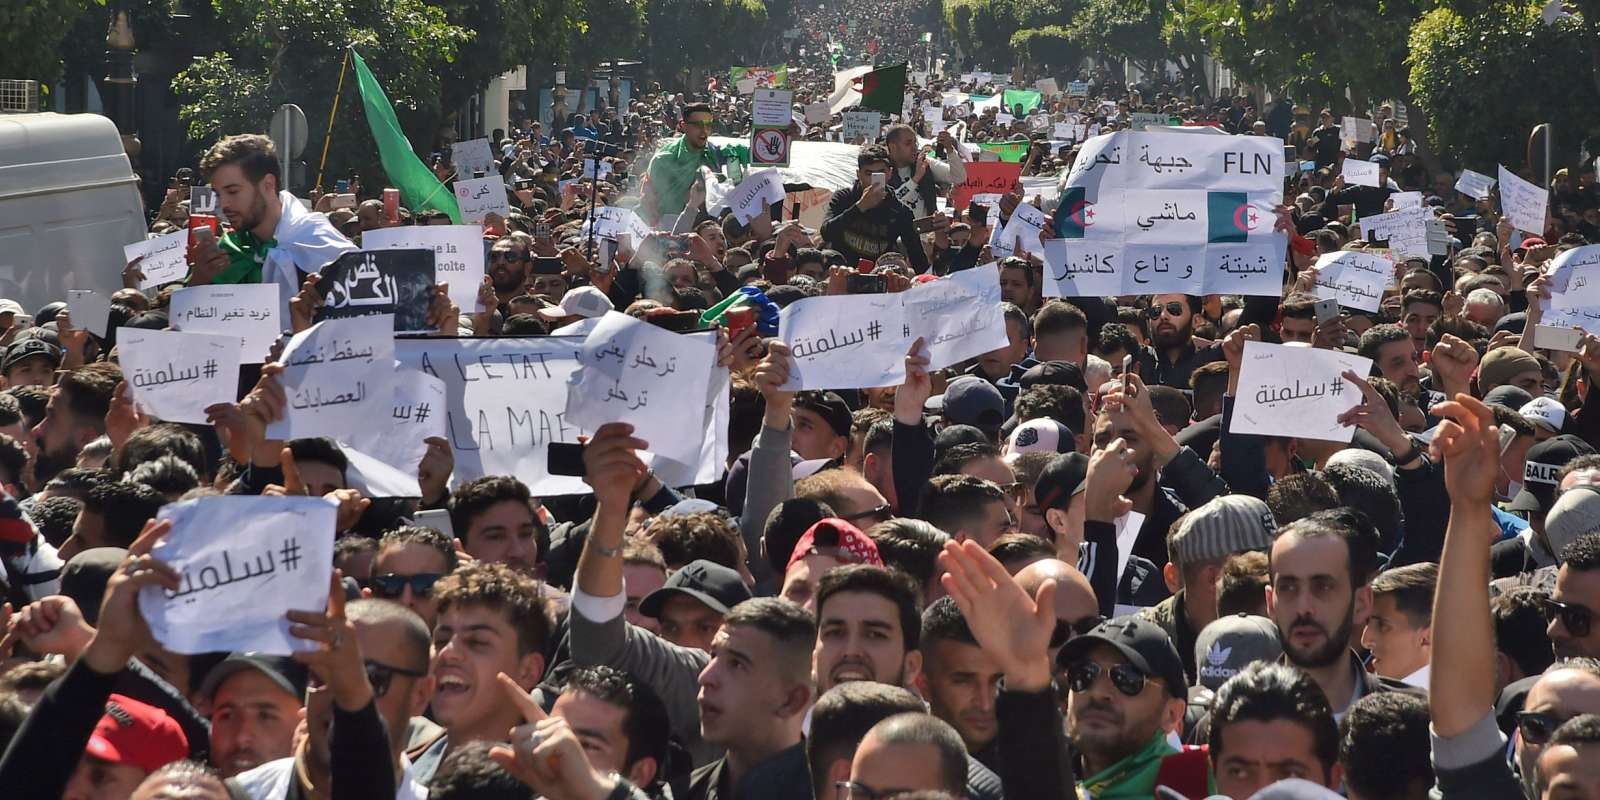 Algerians march with protest sings reading